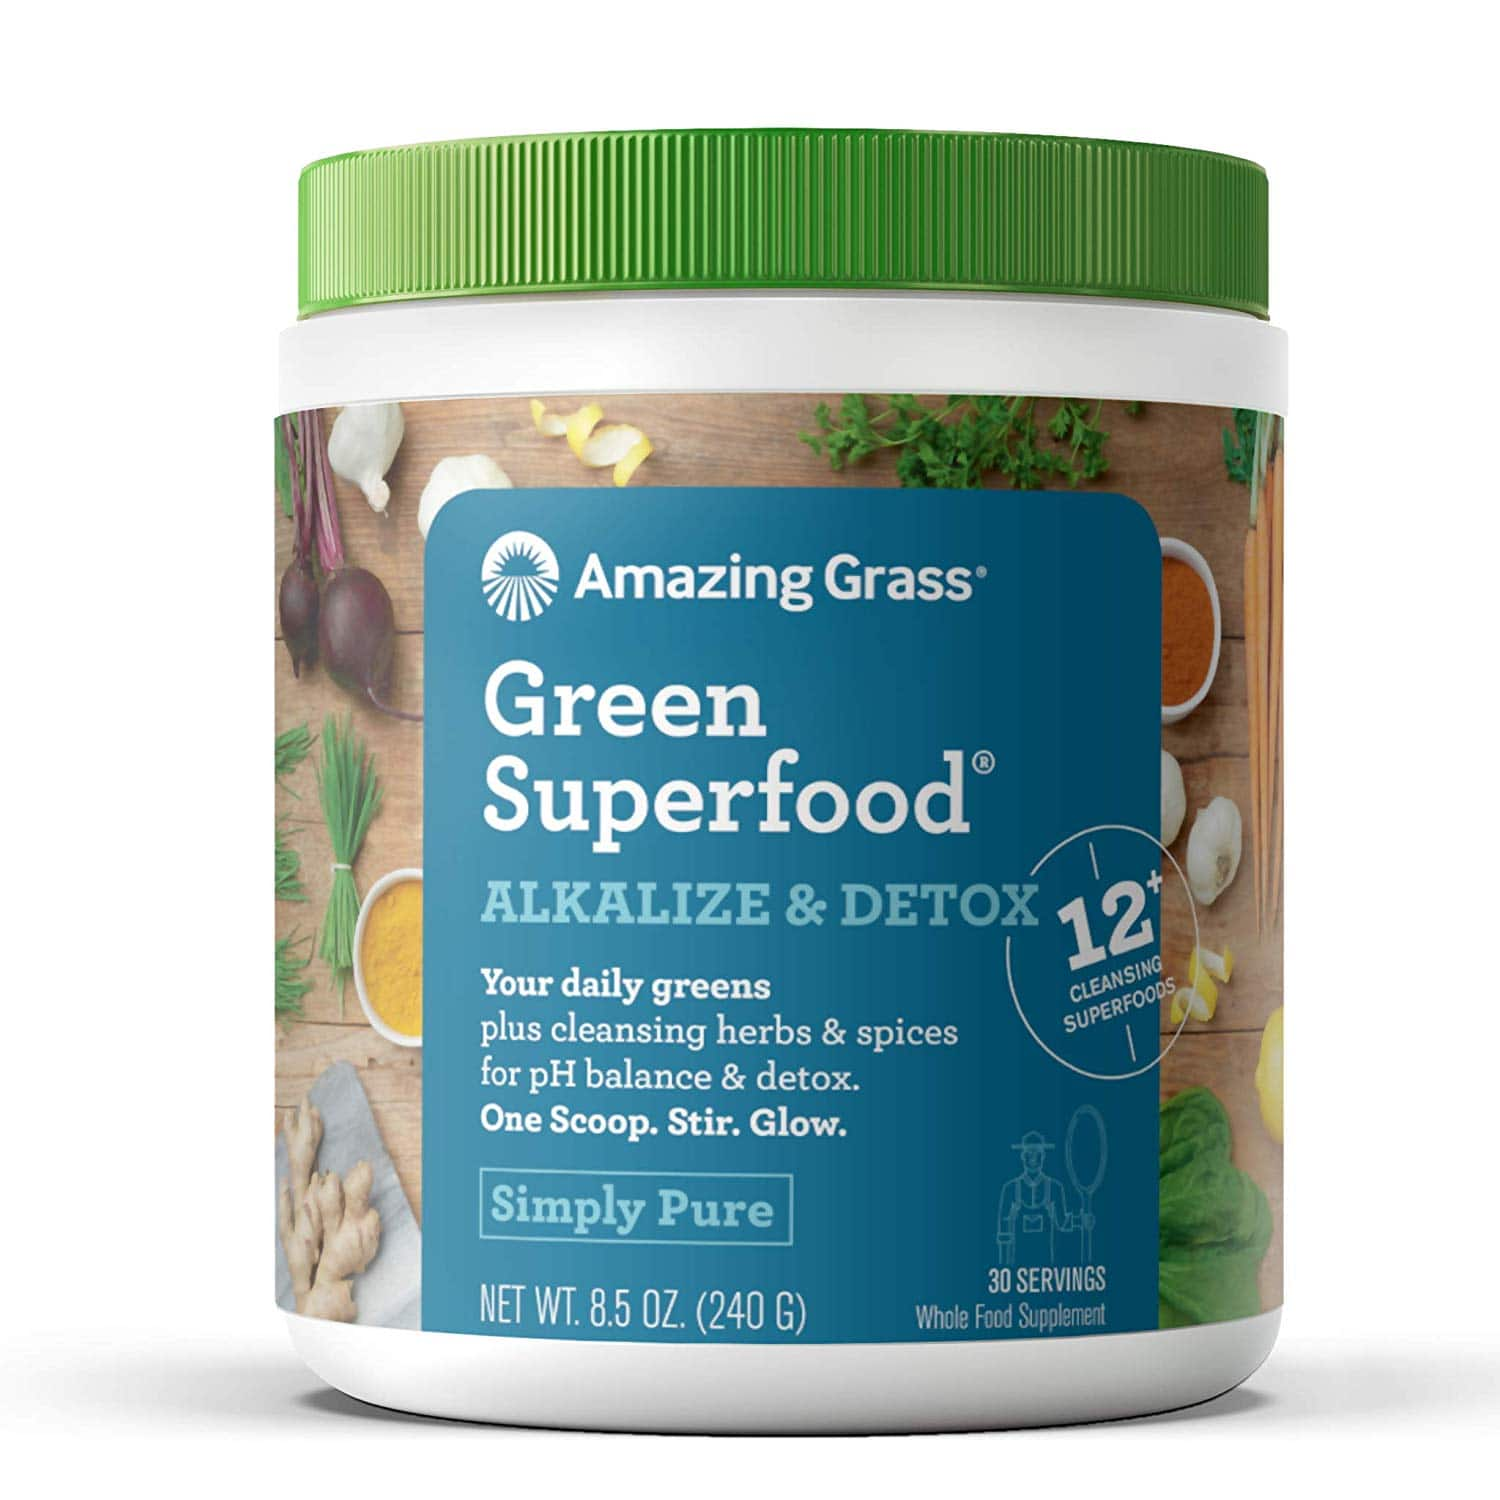 Amazing Grass Green Superfood Alkalize & Detox: Organic Plant Based Powder with Active Probiotics, Greens and Wheat Grass, 30 Servings, $10.64 w/ S&S, Amazon